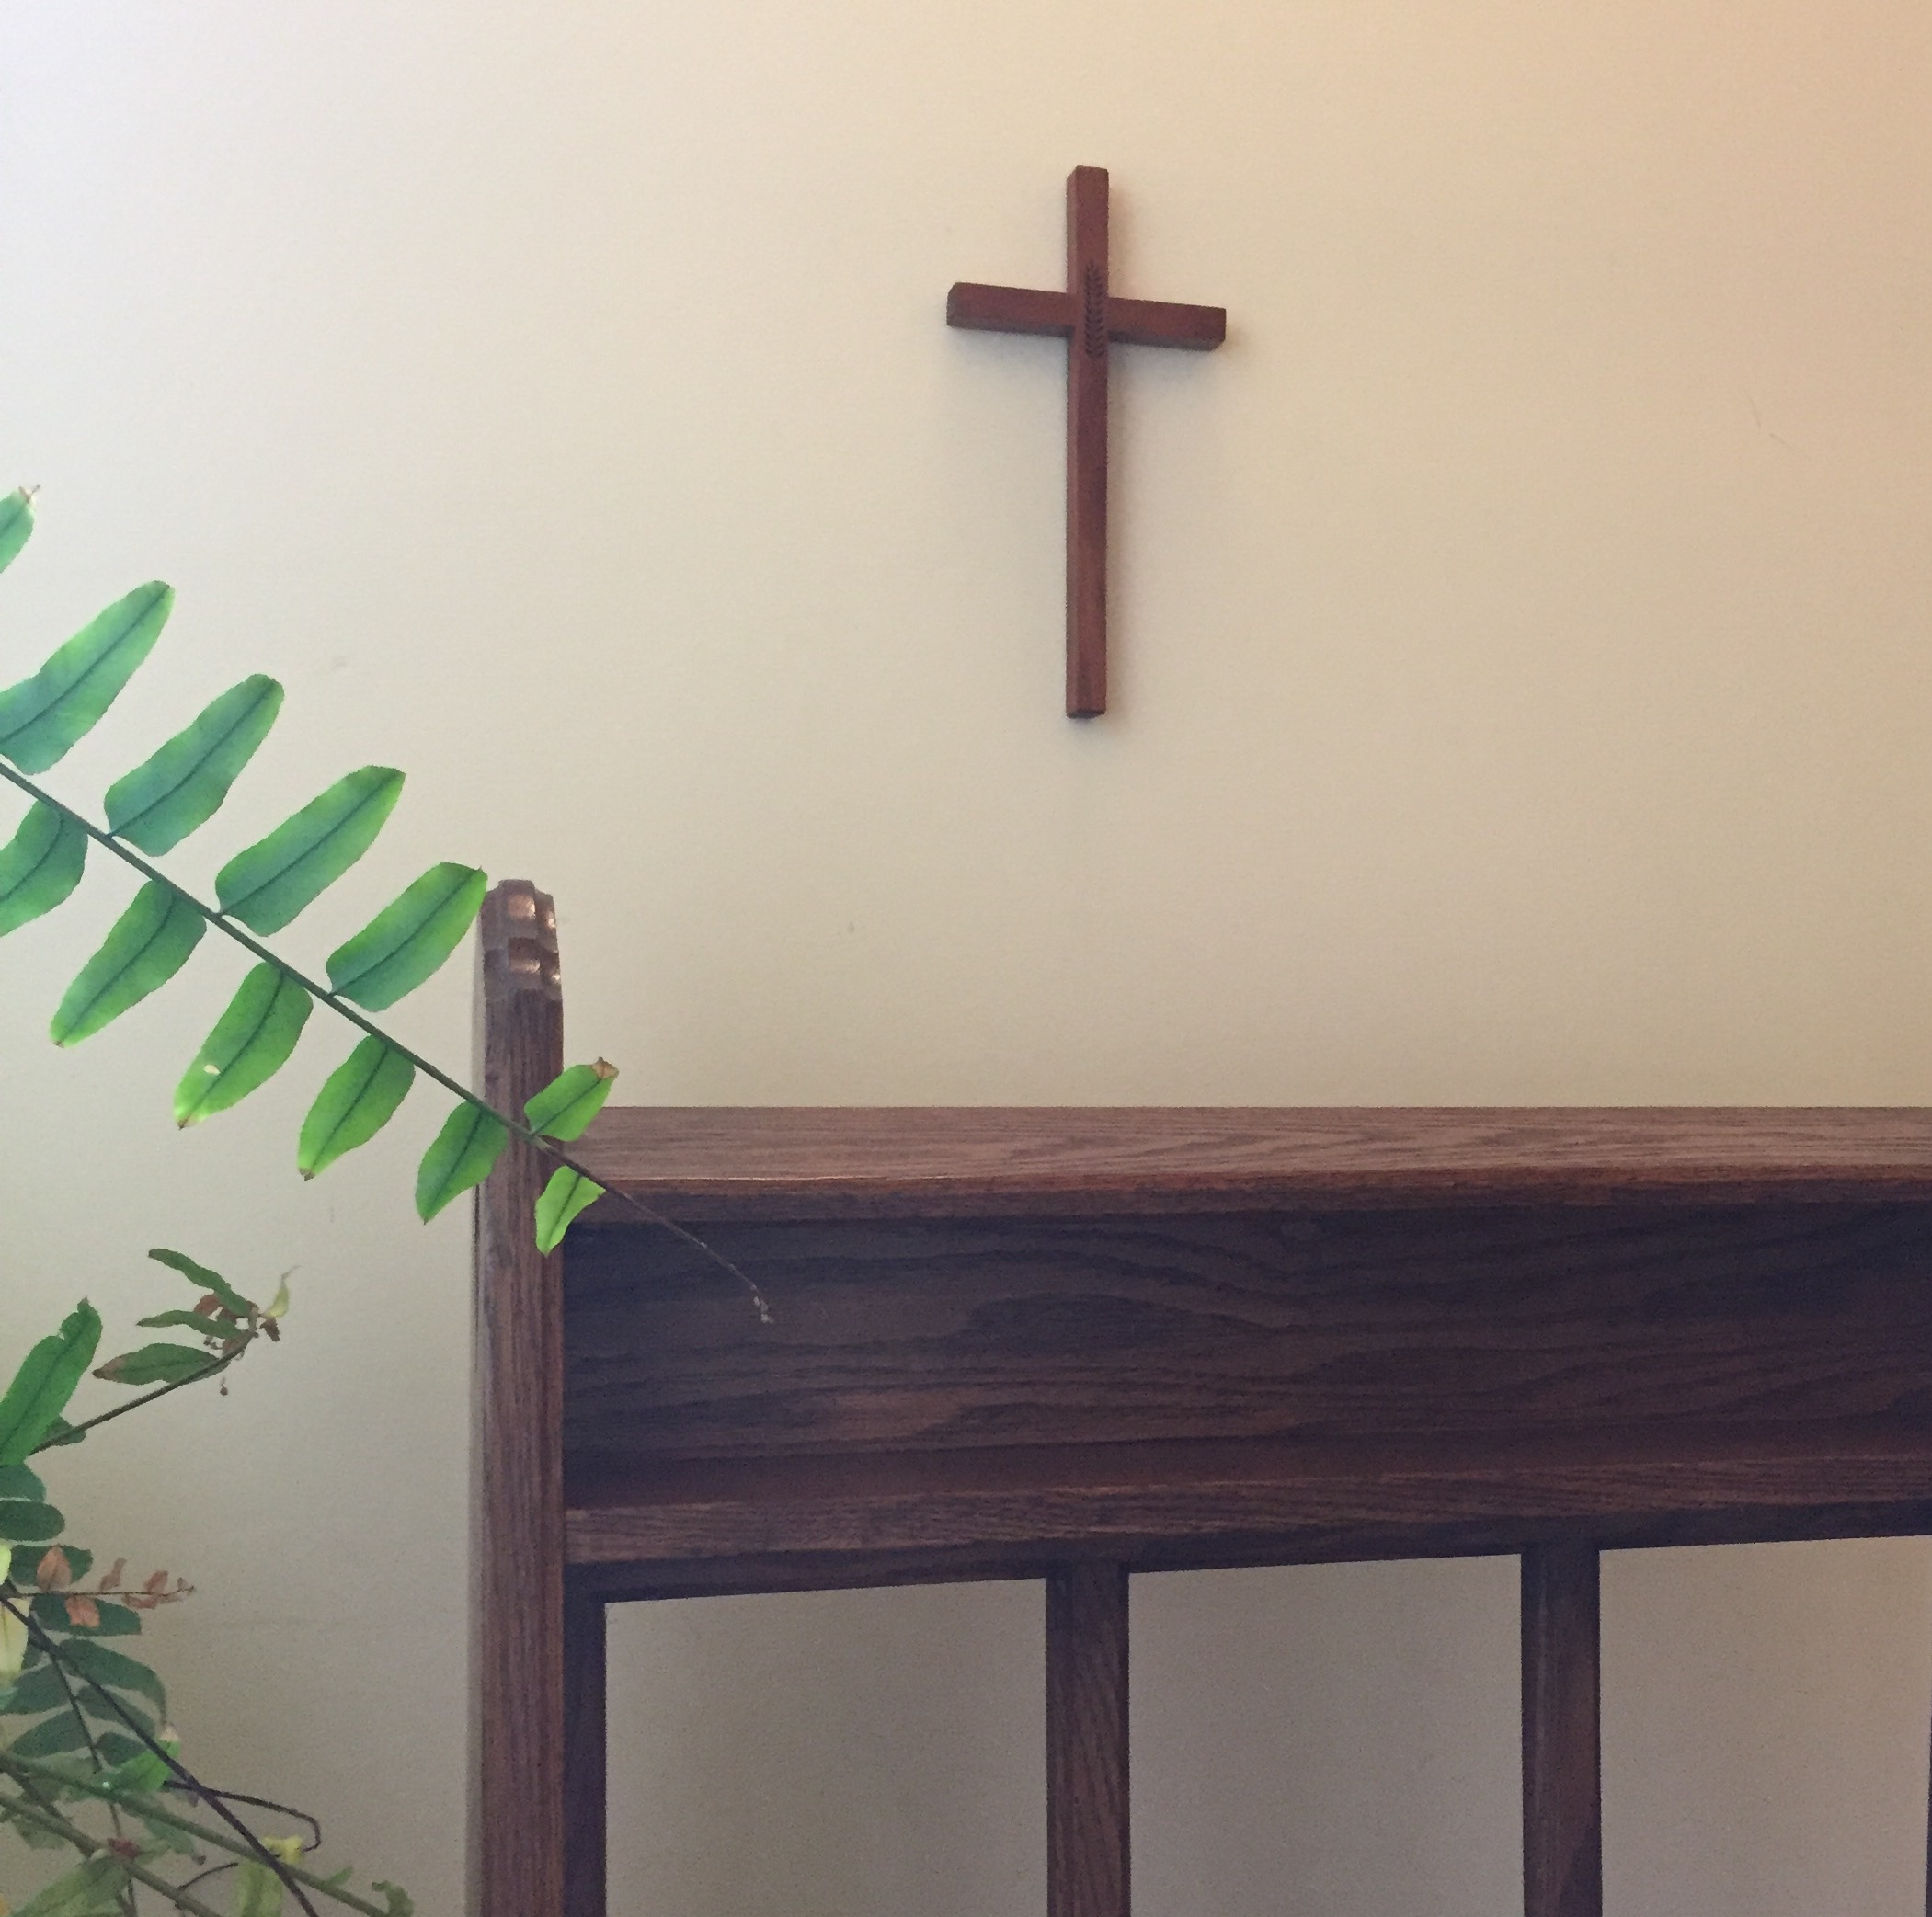 kneeling bench and cross